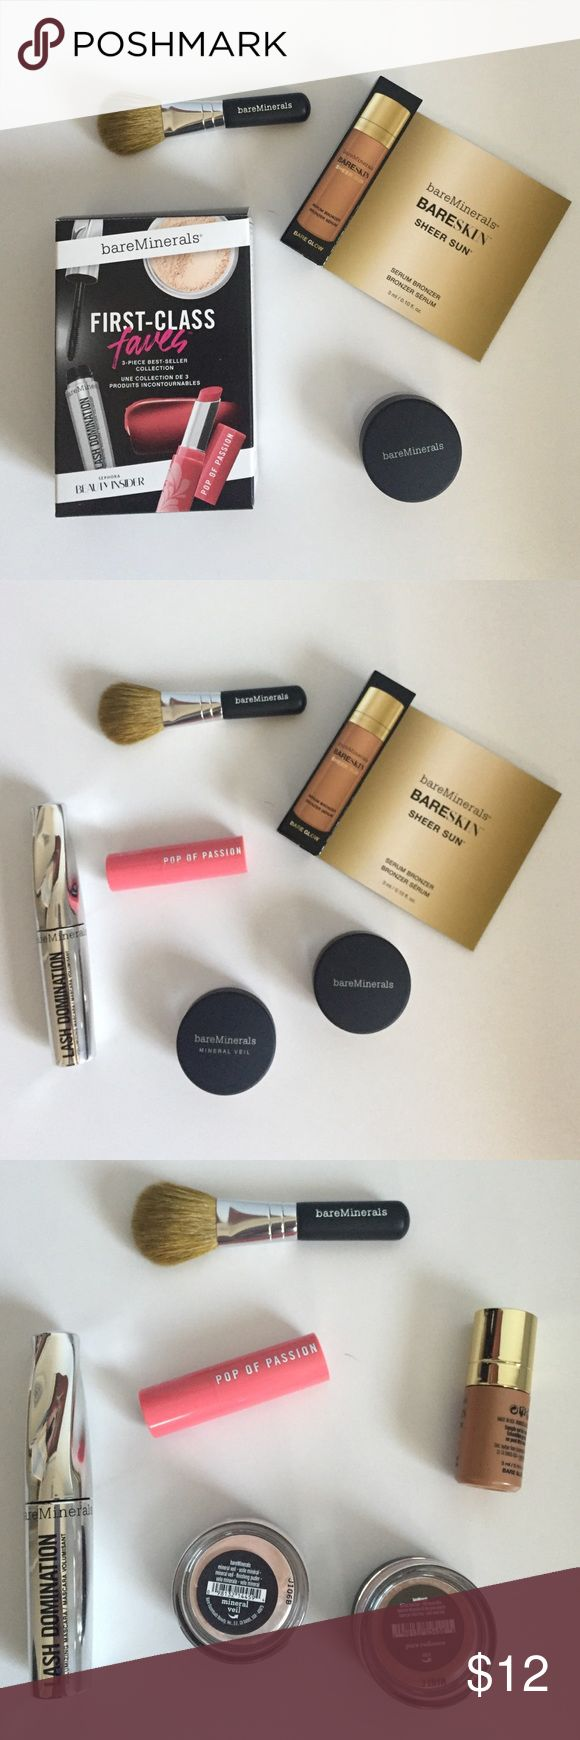 Brand New, Bare Minerals Set Bare Minerals bundle, never been used. Set includes: mini mineral veil finishing powder, lash domination volumizing mascara, pop of passion lip oil-balm, sheer sun serum bronzer, pure radiance all over face color, and mini face brush bareMinerals Makeup